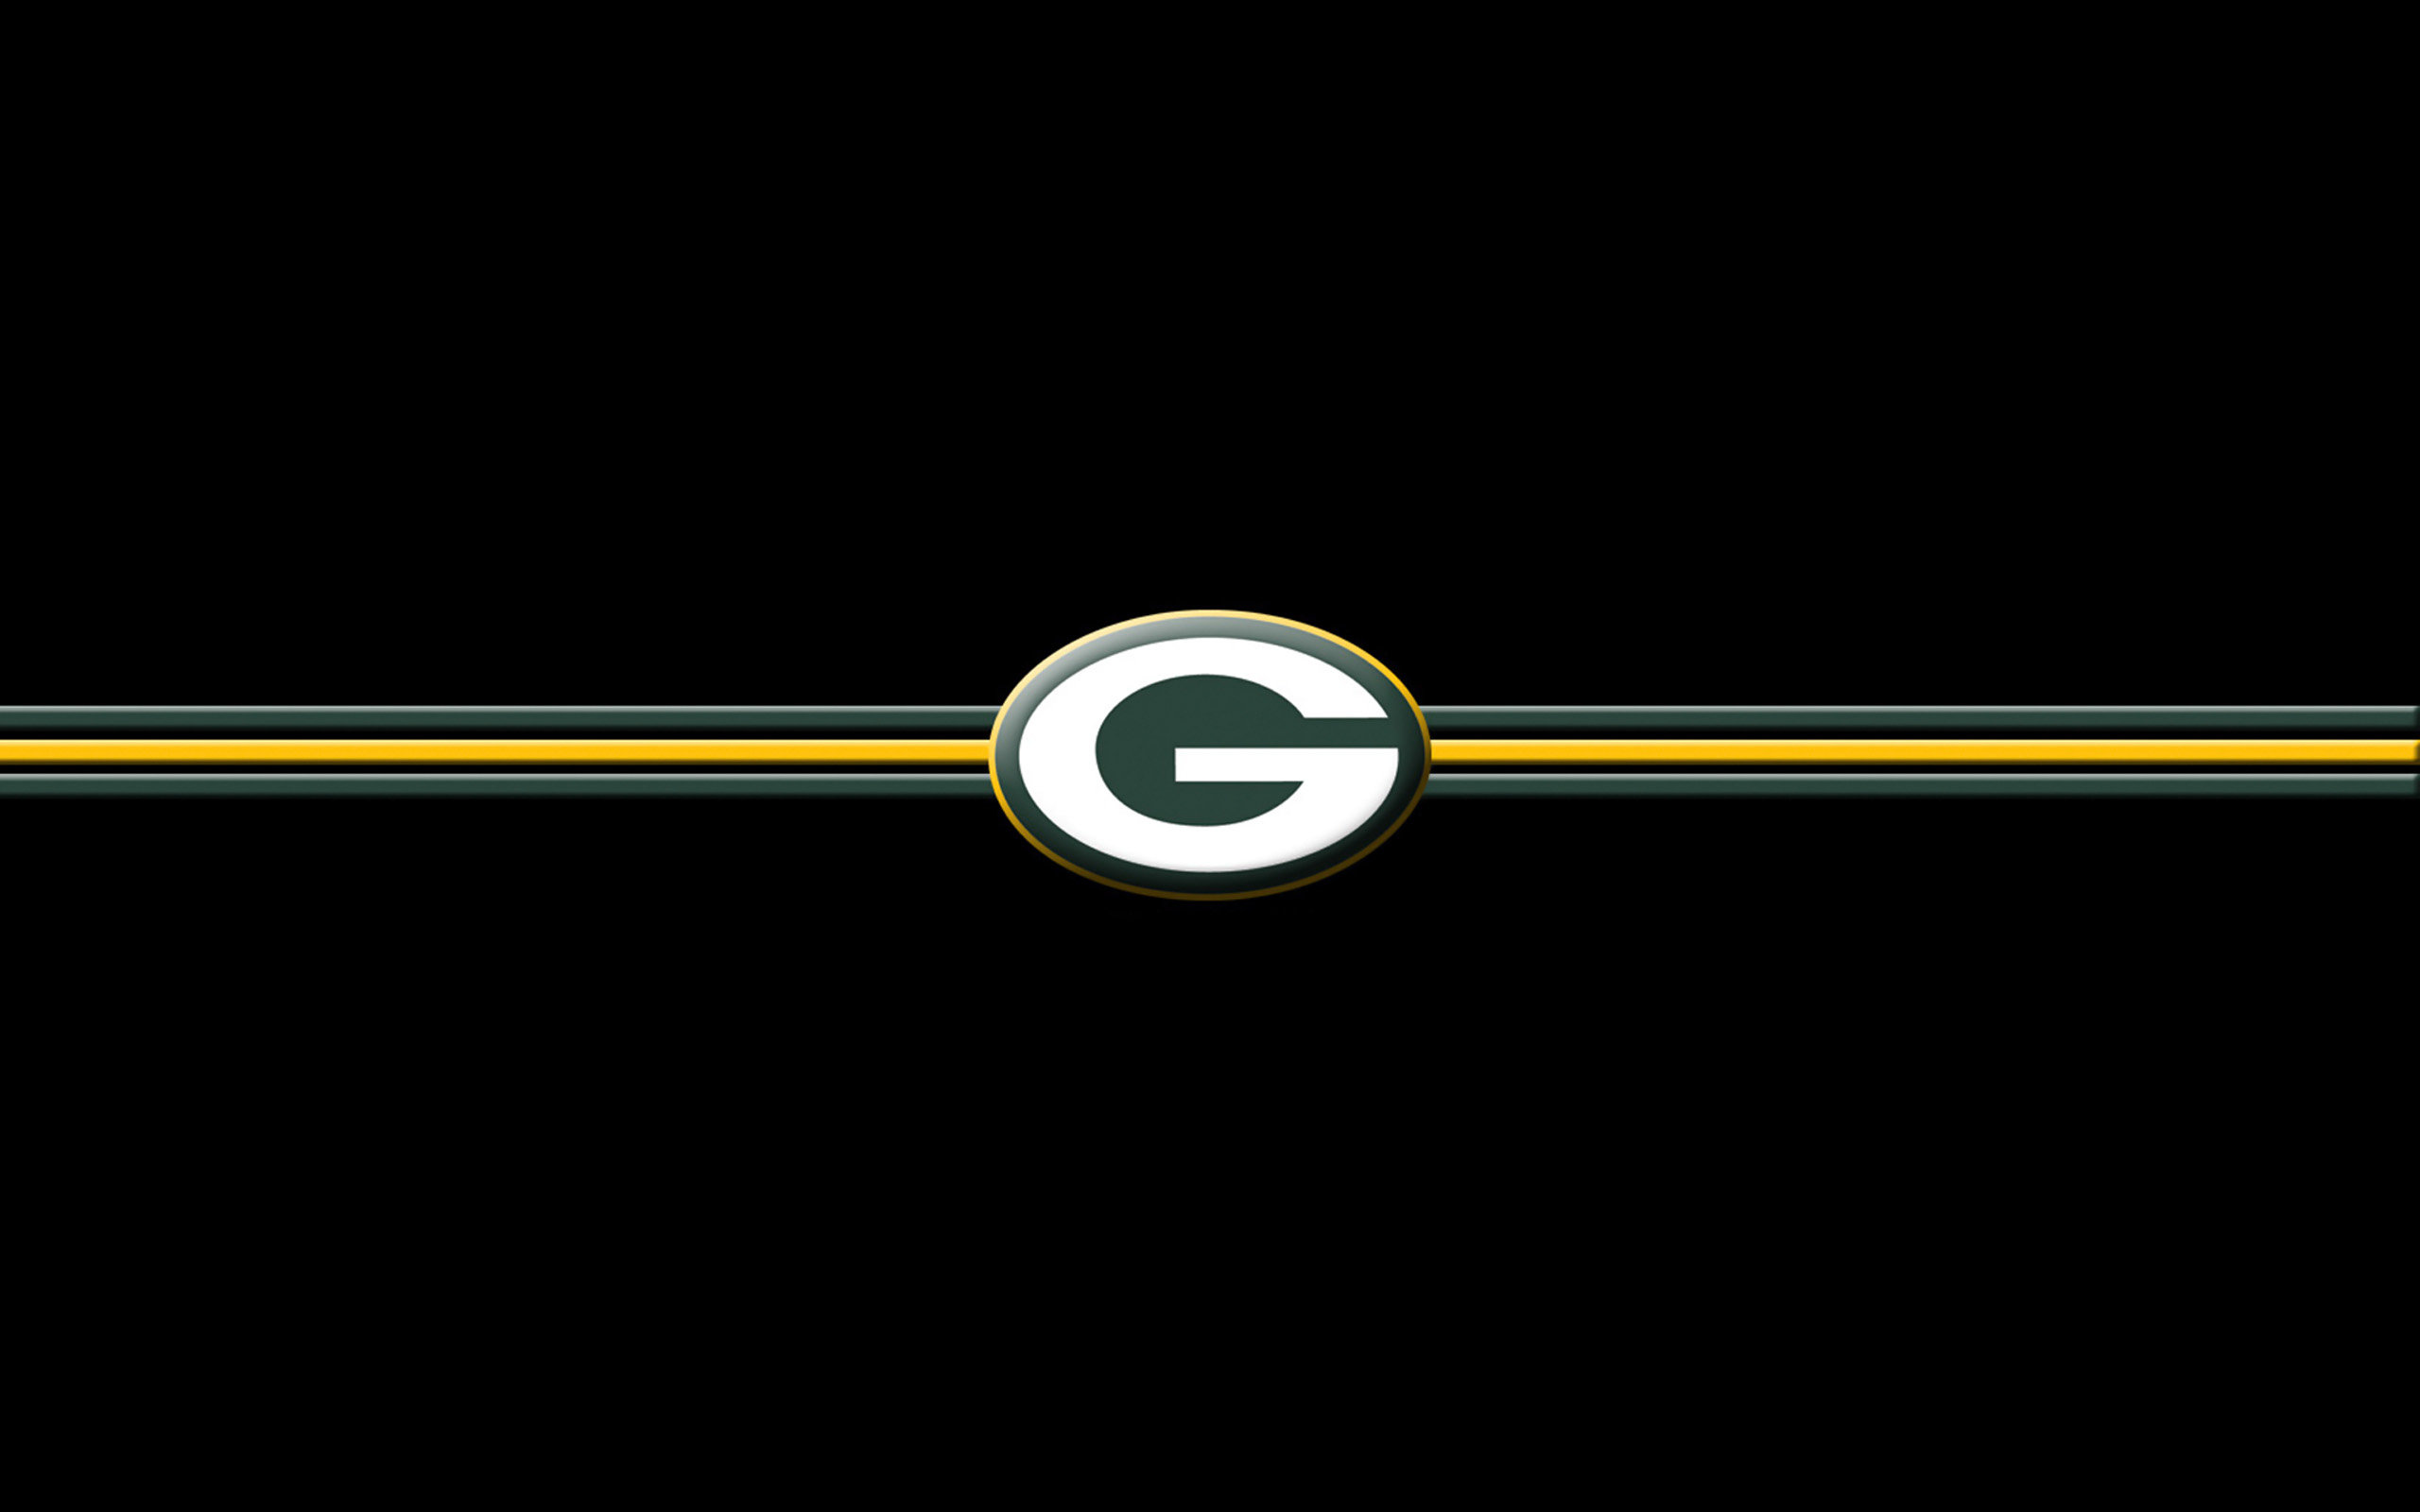 Free Green Bay Packers high quality